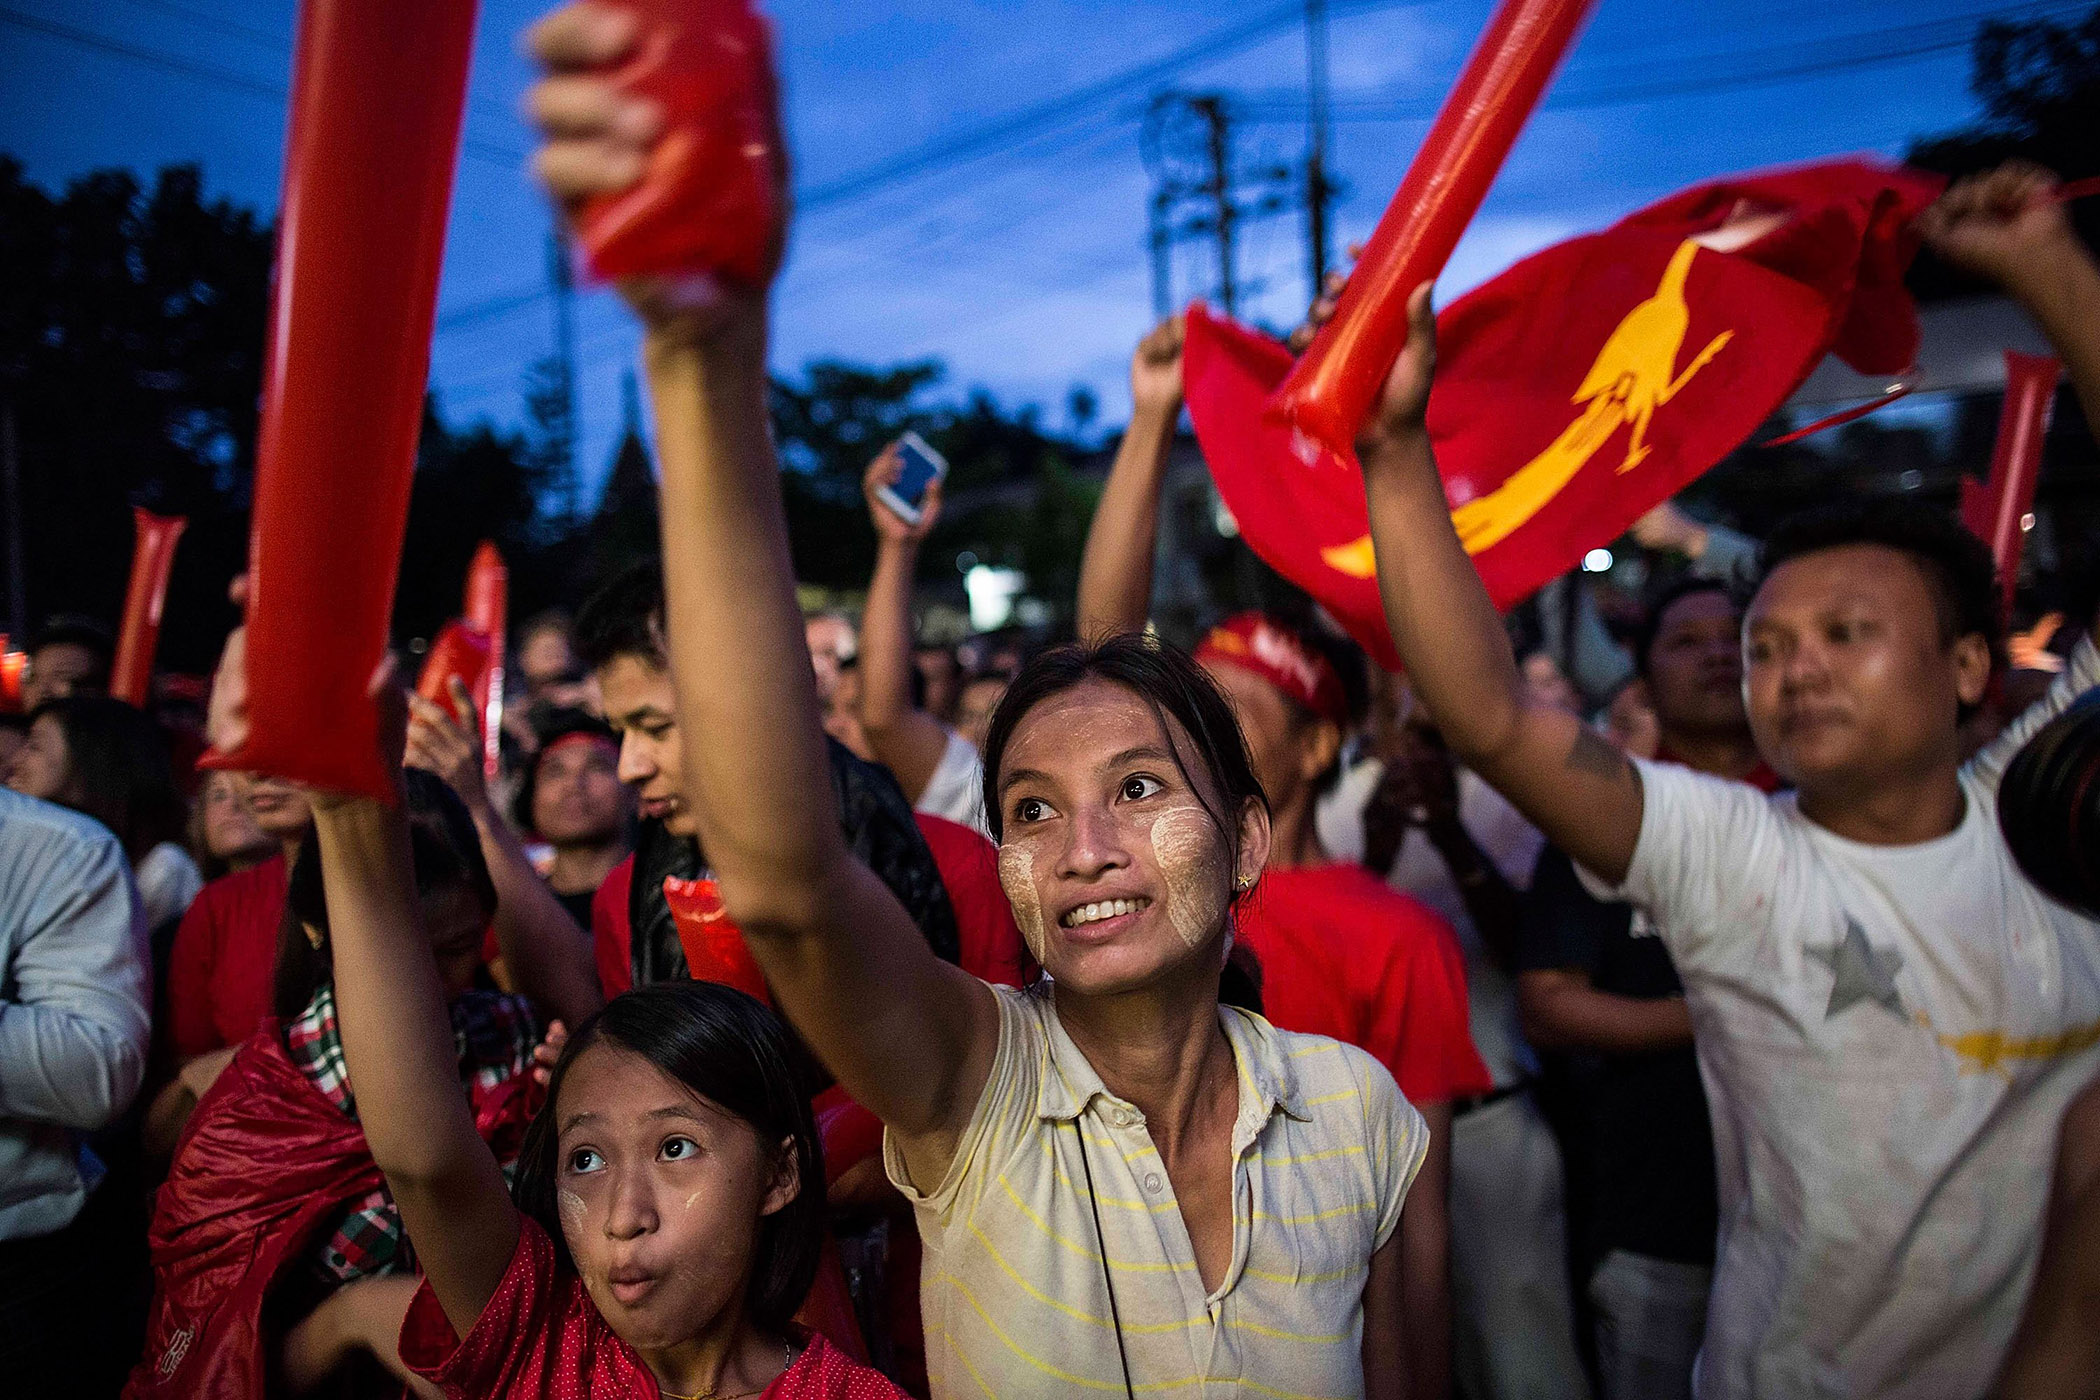 People take part of the rally outside the National League for Democracy office after Burma's first free and fair election, in Yangon on Nov. 8, 2015.